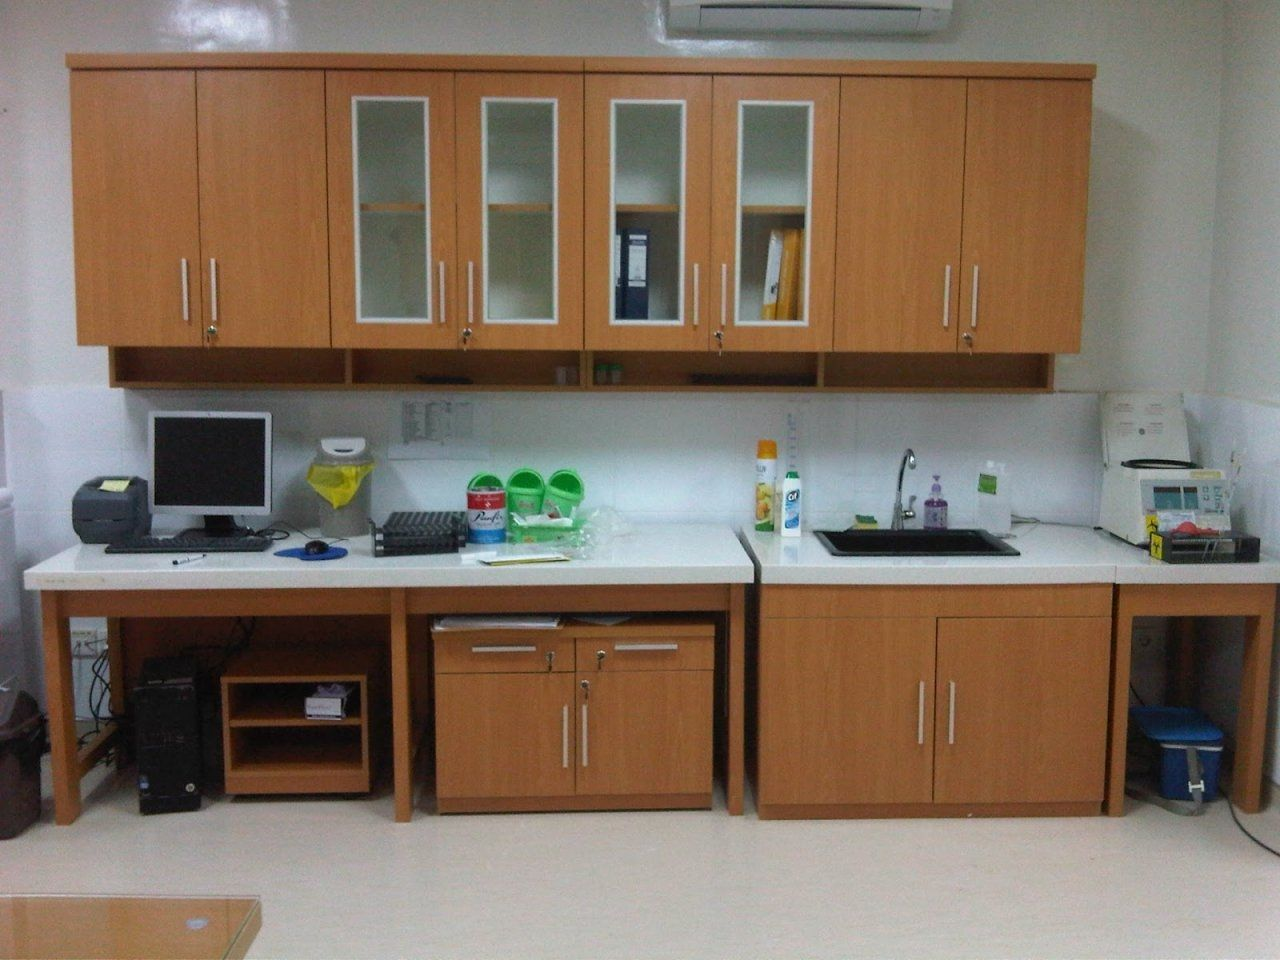 Model Lemari Dapur Gantung Home Decor Pinterest Home Decor